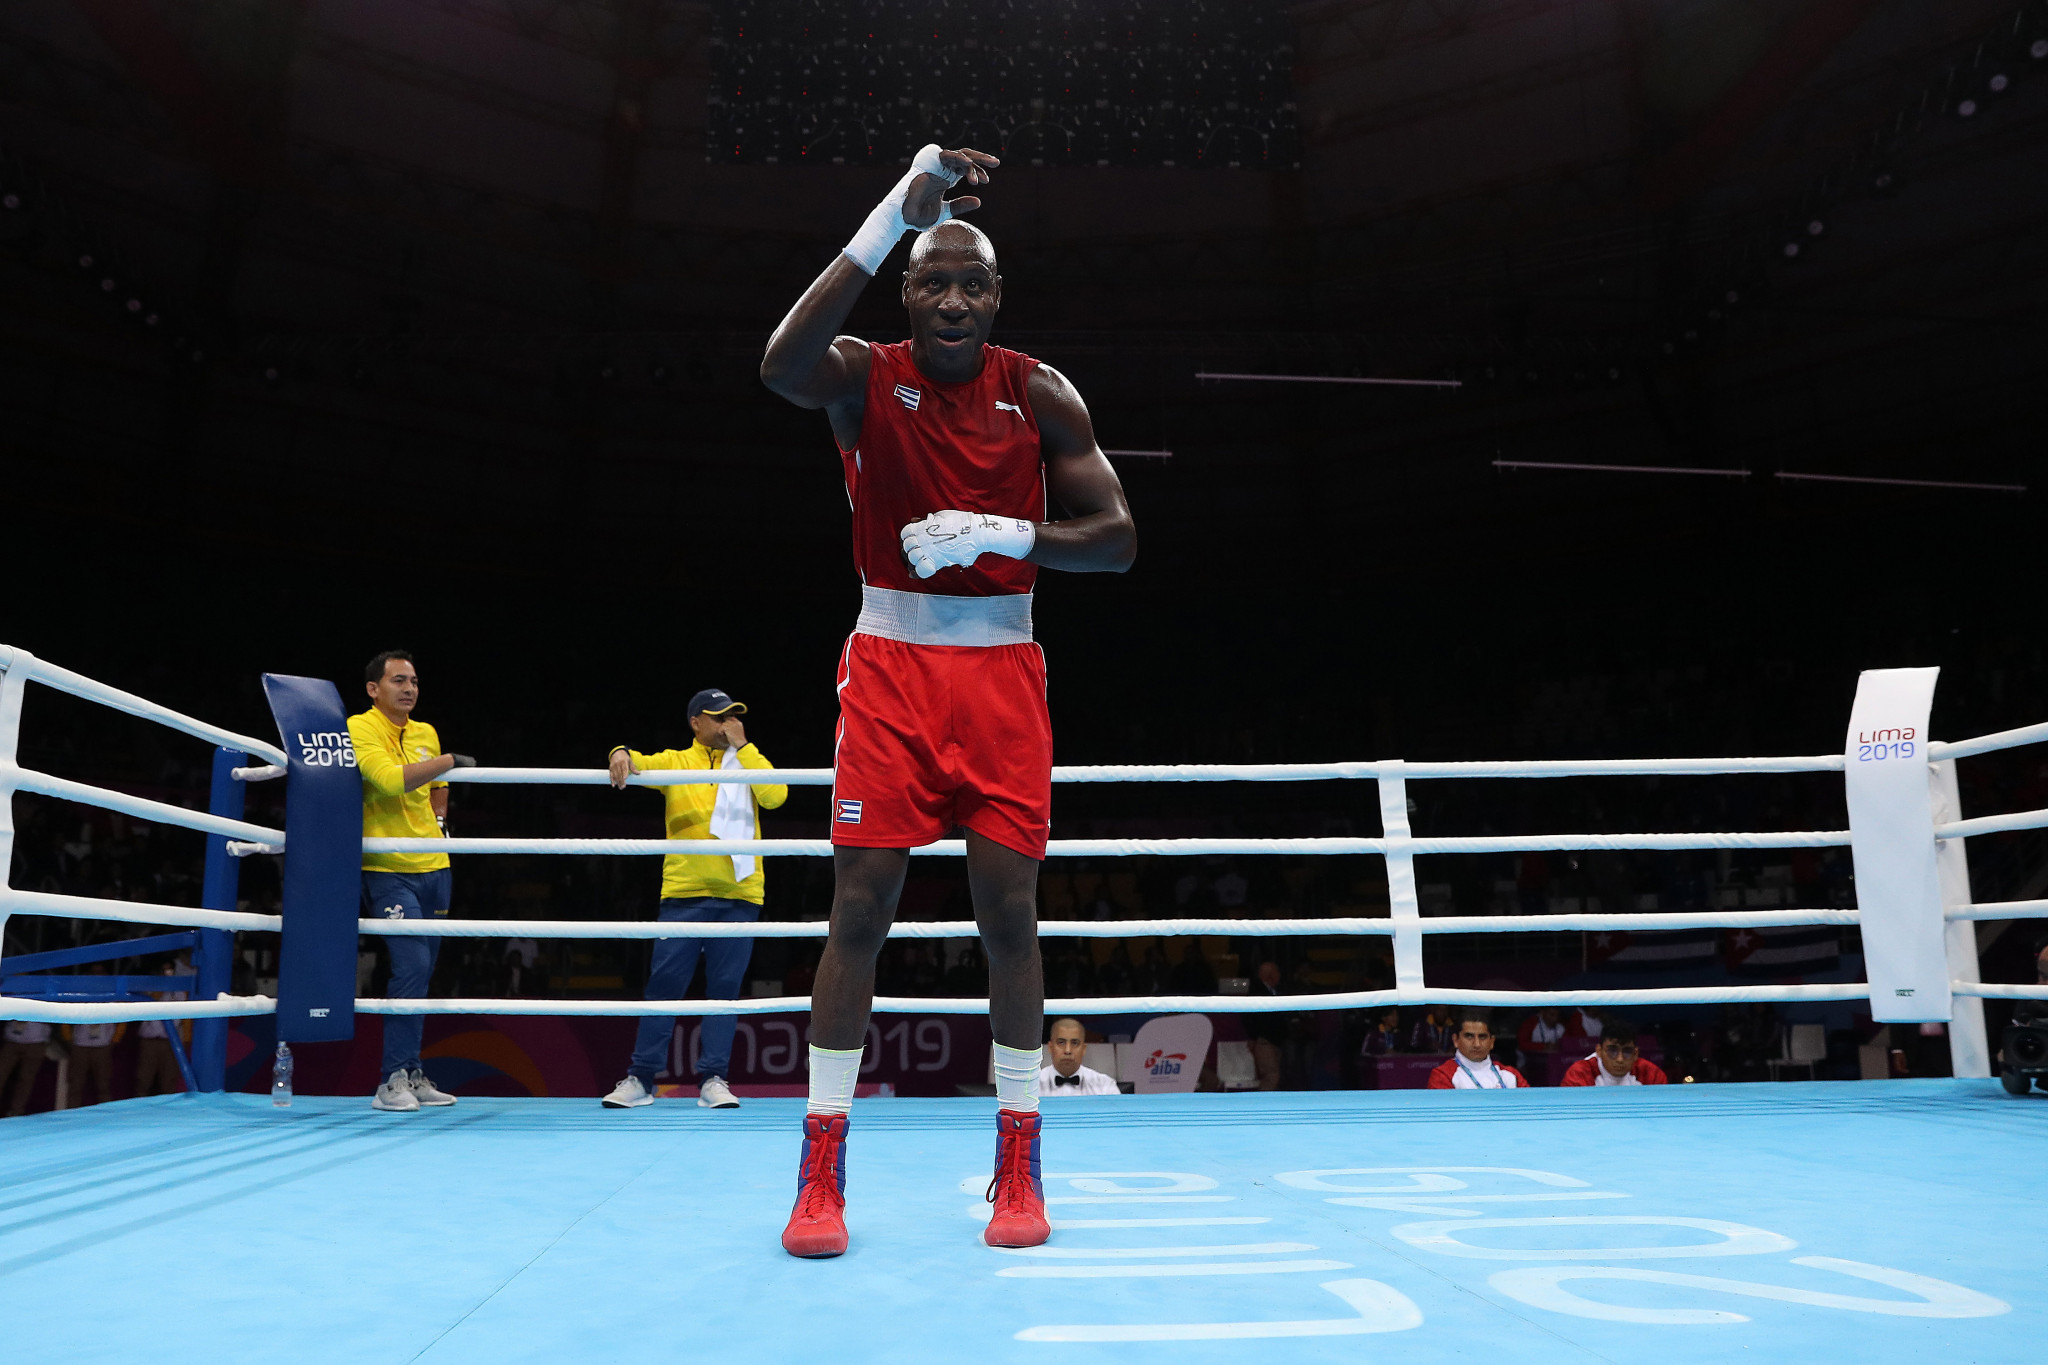 Cuba's Erislandy Savón won the men's heavyweight final ©Getty Images